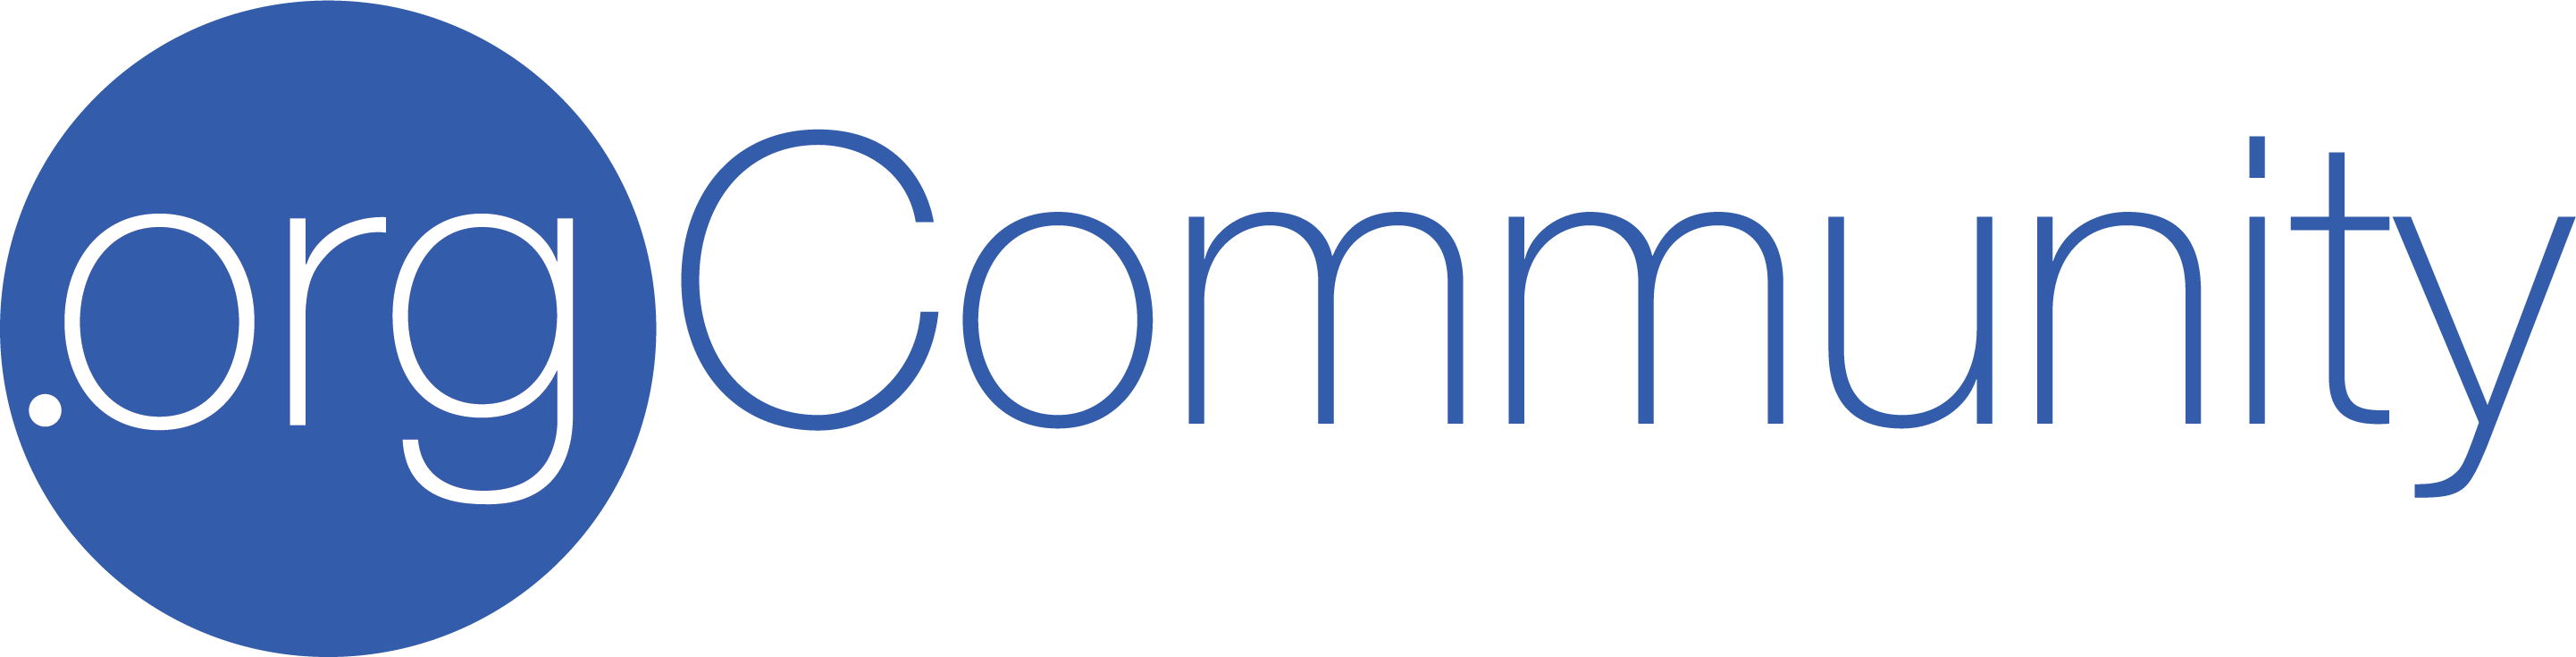 orgCom_logo_notag_1-color_pms285-Uncoated.png